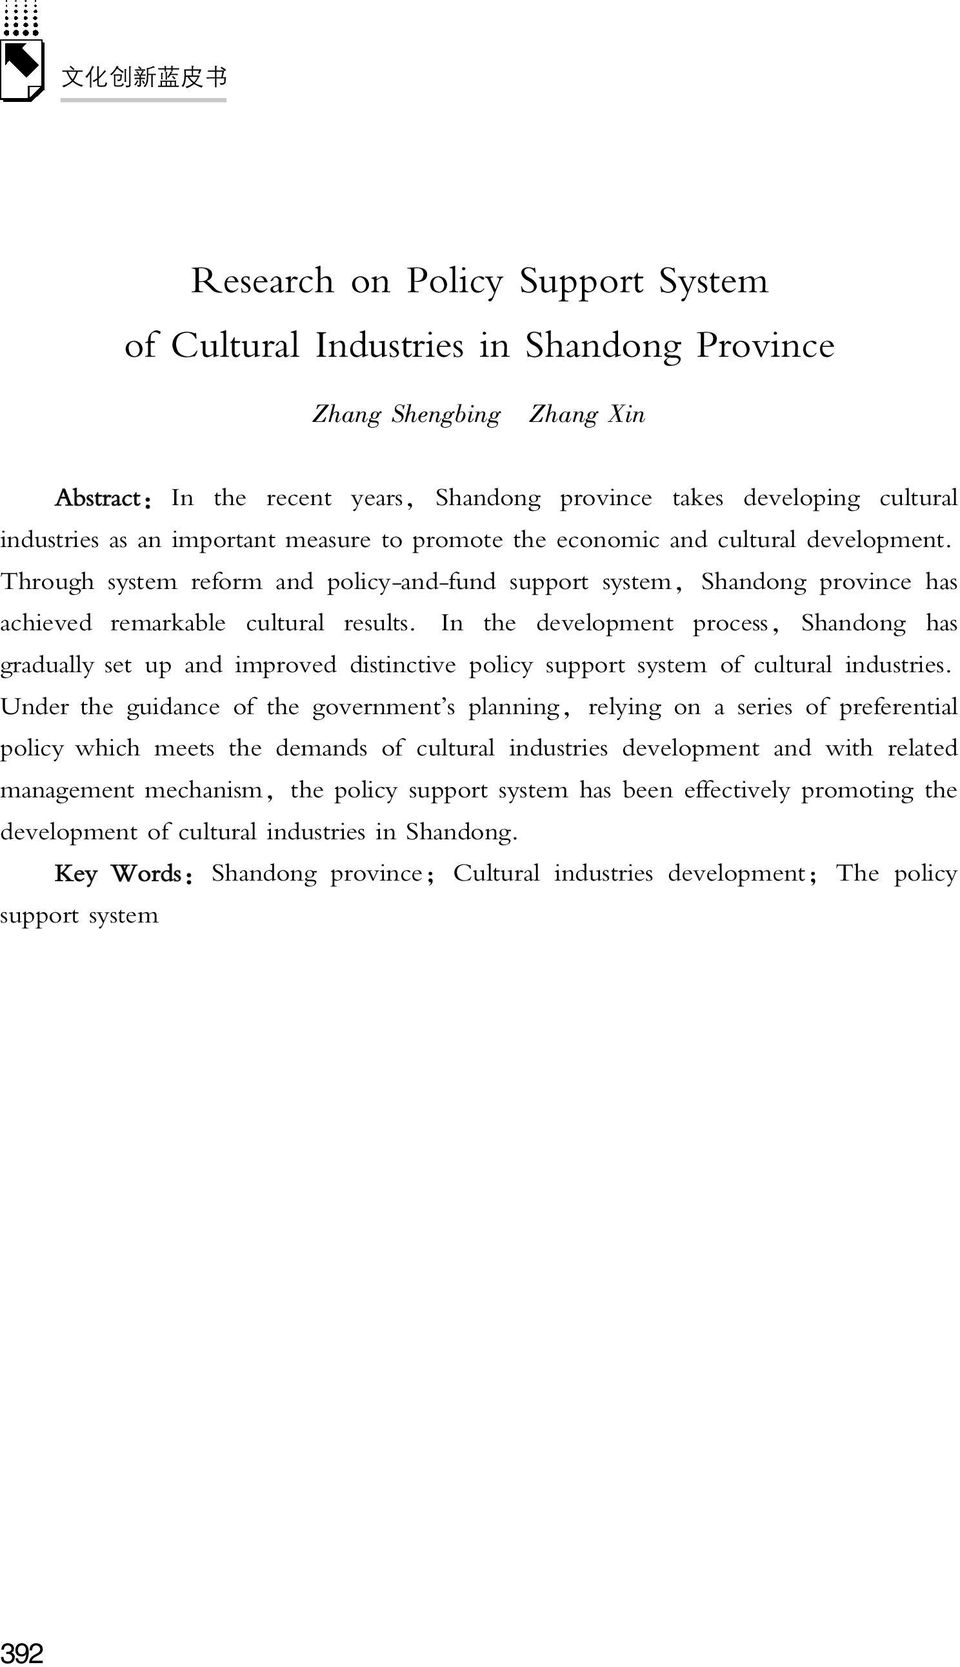 Through system reform and policy-and-fund support system, Shandong province has achieved remarkable cultural results.